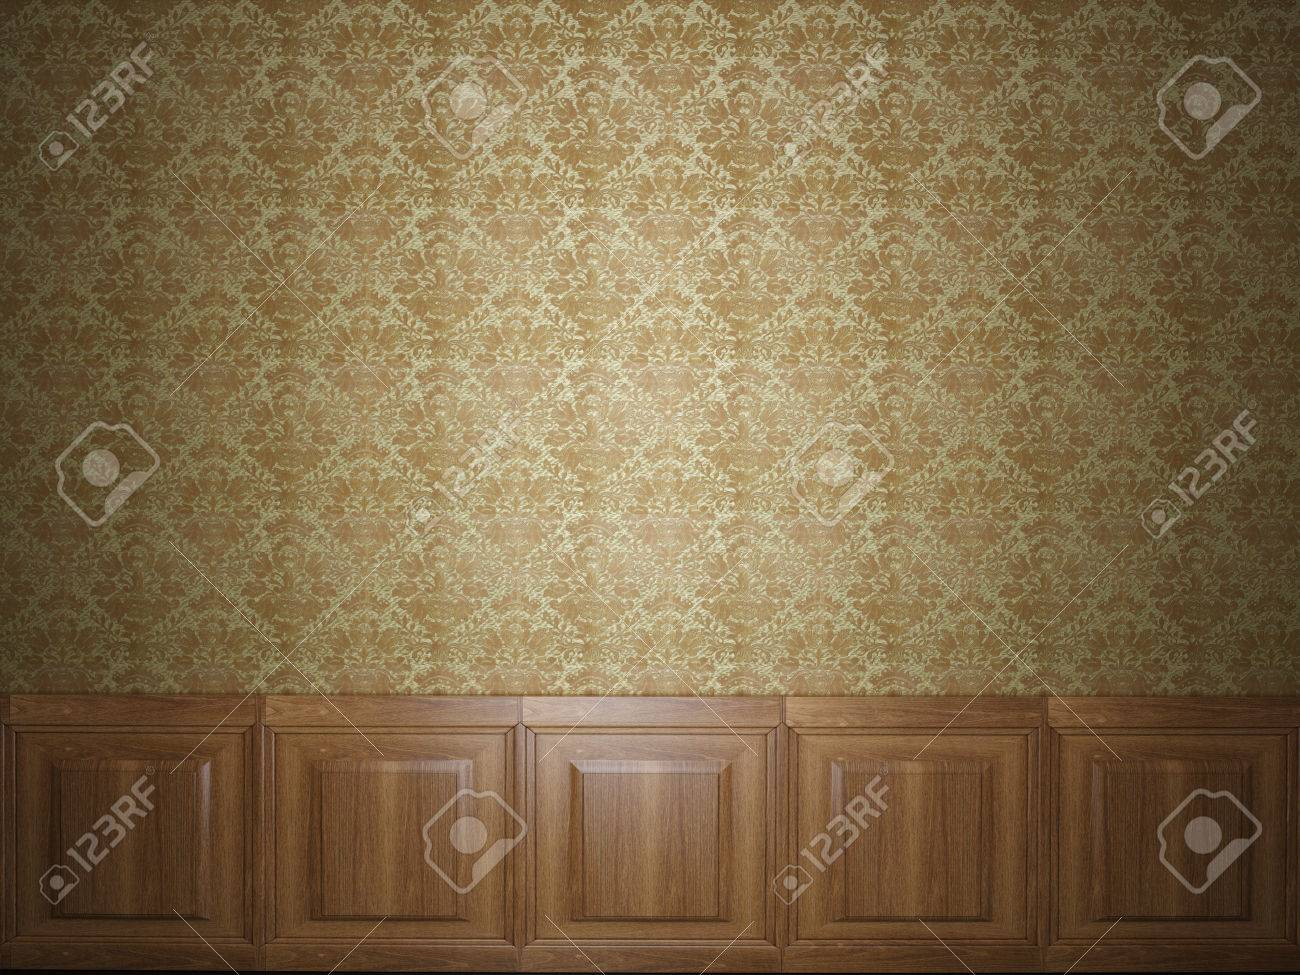 Wood Panel Wallpaper Stock Photo Picture And Royalty Free Image